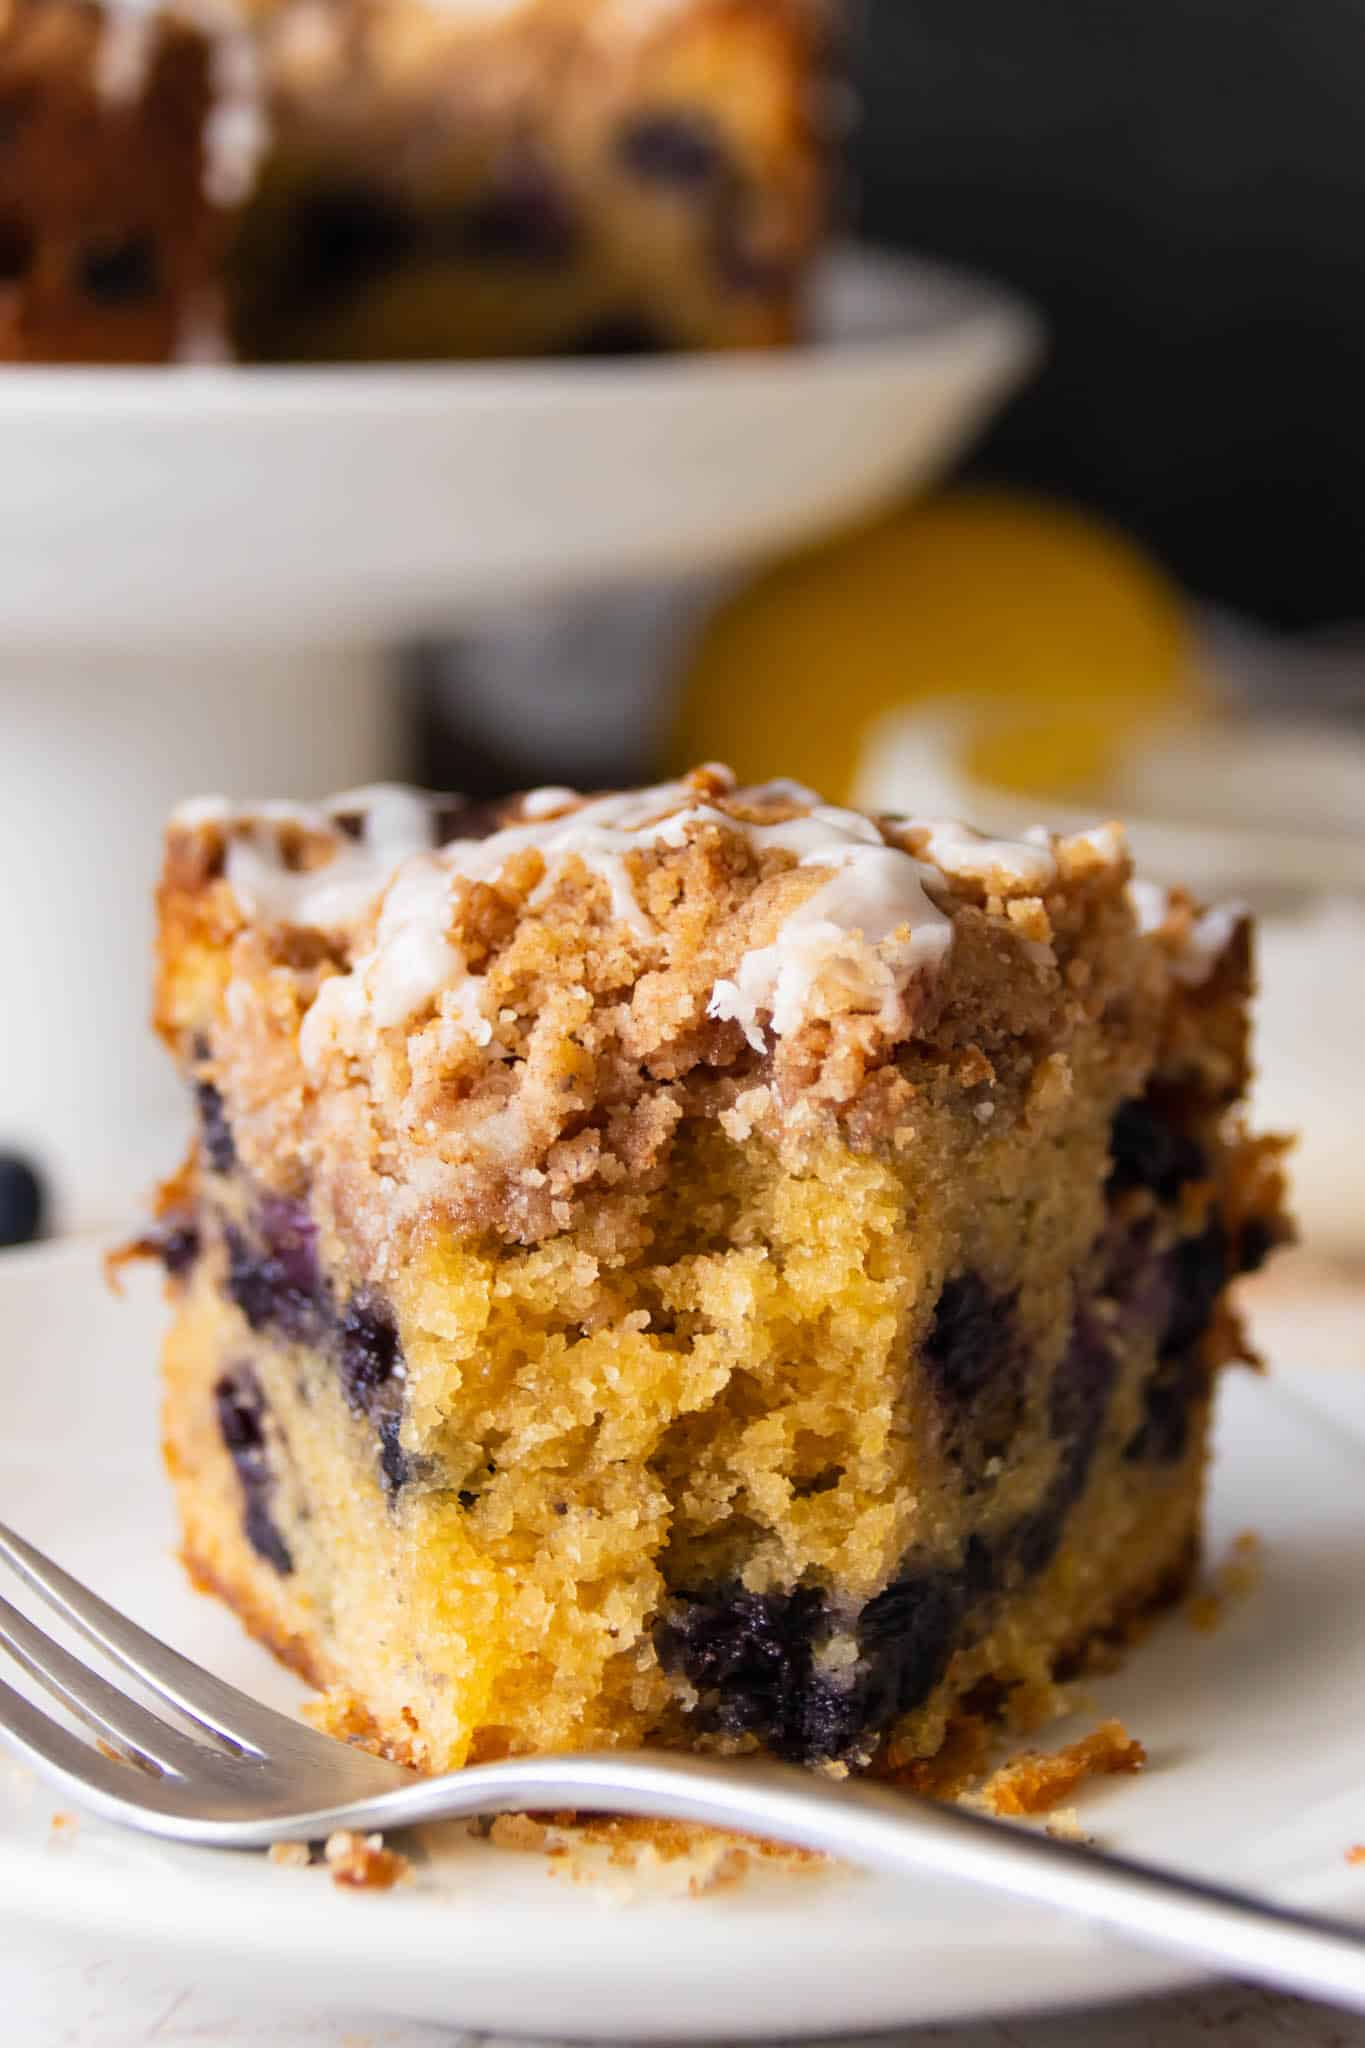 The moist and tender crumb of a blueberry crumble cake slice, drizzled with lemon glaze